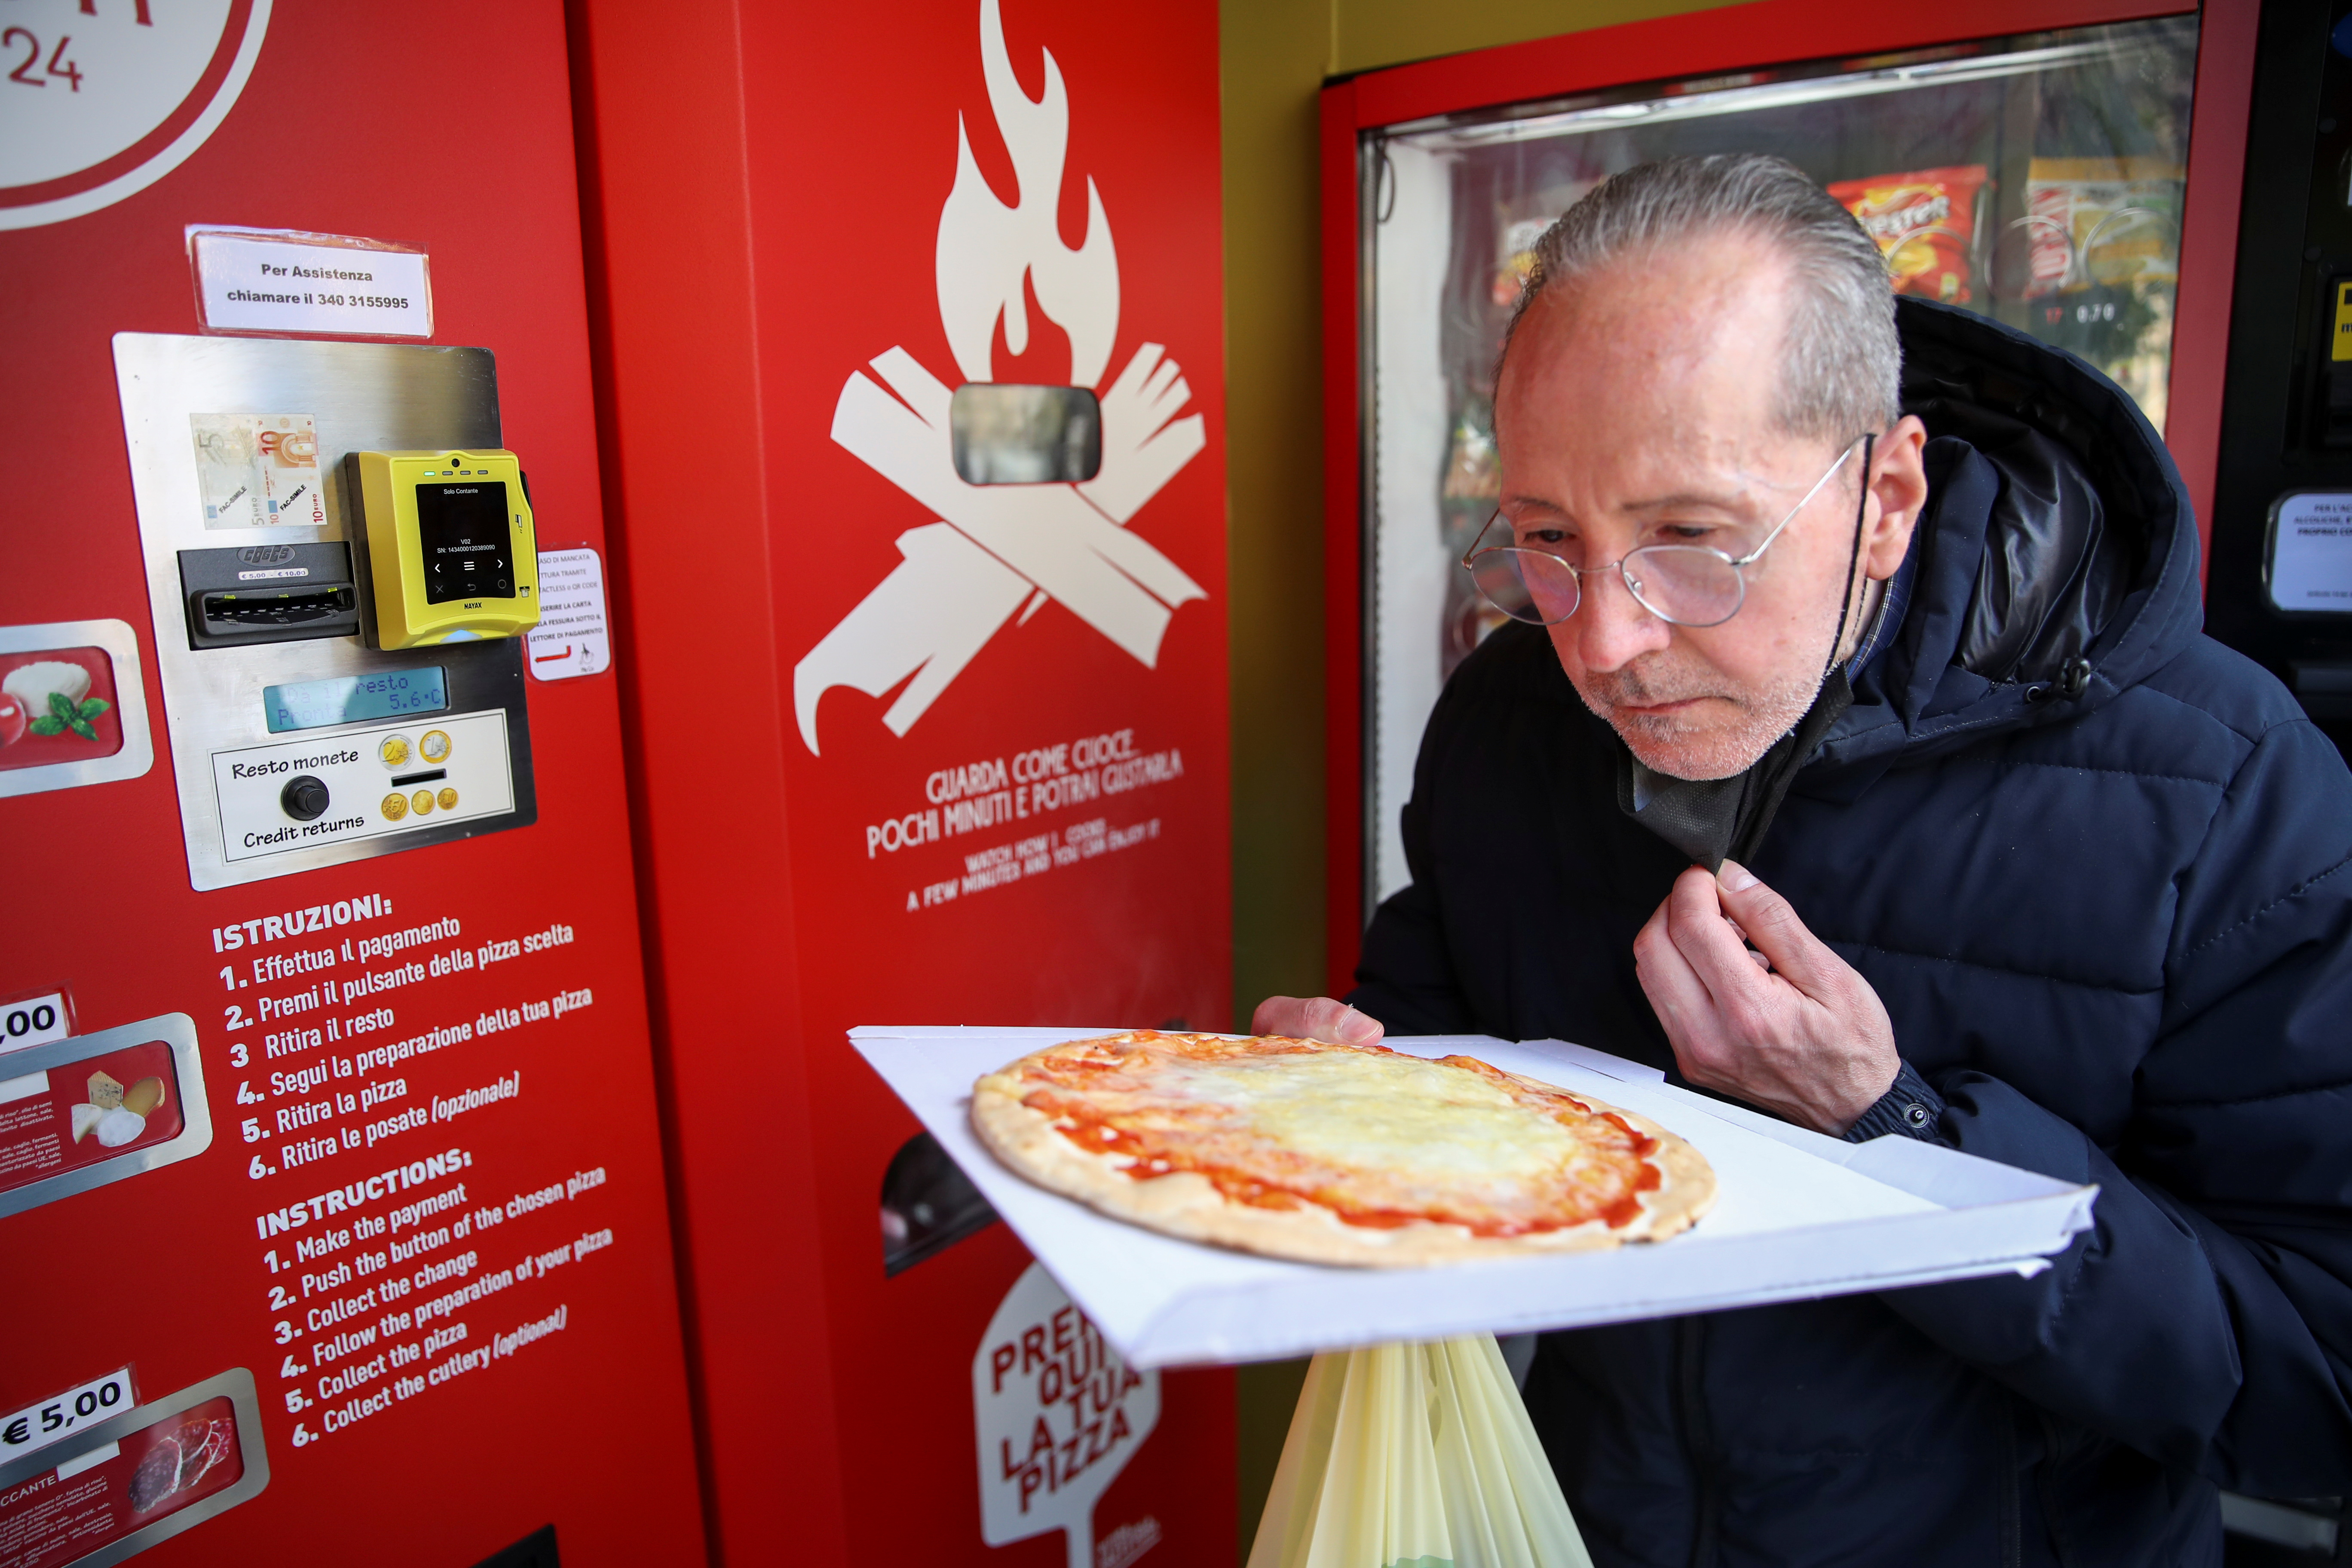 Claudio Zampiga sniffs his pizza at the first automatic pizza vending machine, which is capable of kneading, seasoning and cooking the pizza in three minutes, in Rome, Italy, May 6, 2021. REUTERS/Yara Nardi